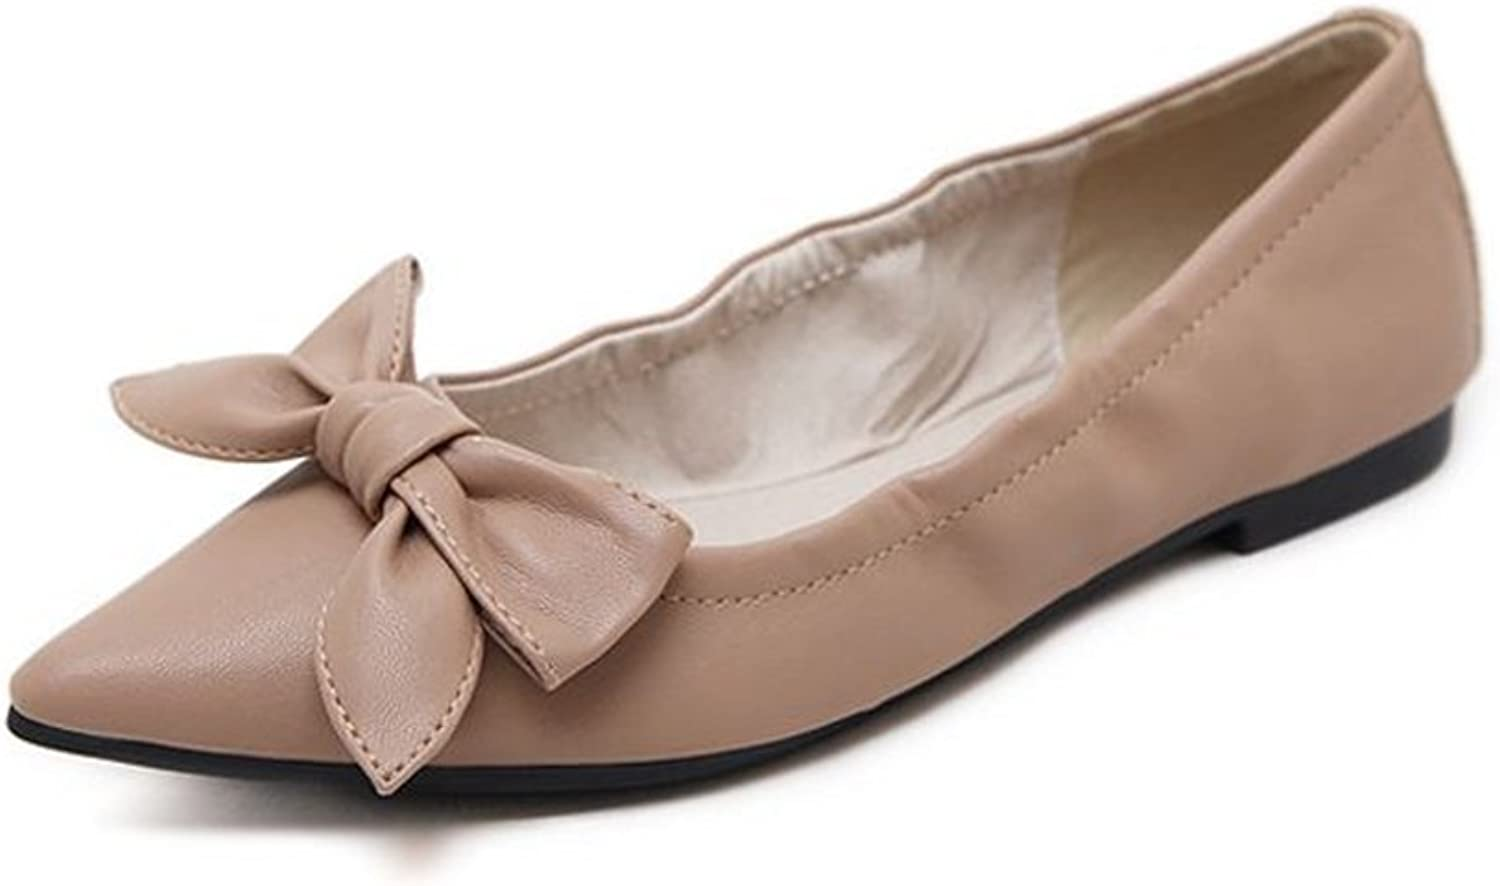 Women's Foldable Sole-Flex Ballerina Walking Flats shoes